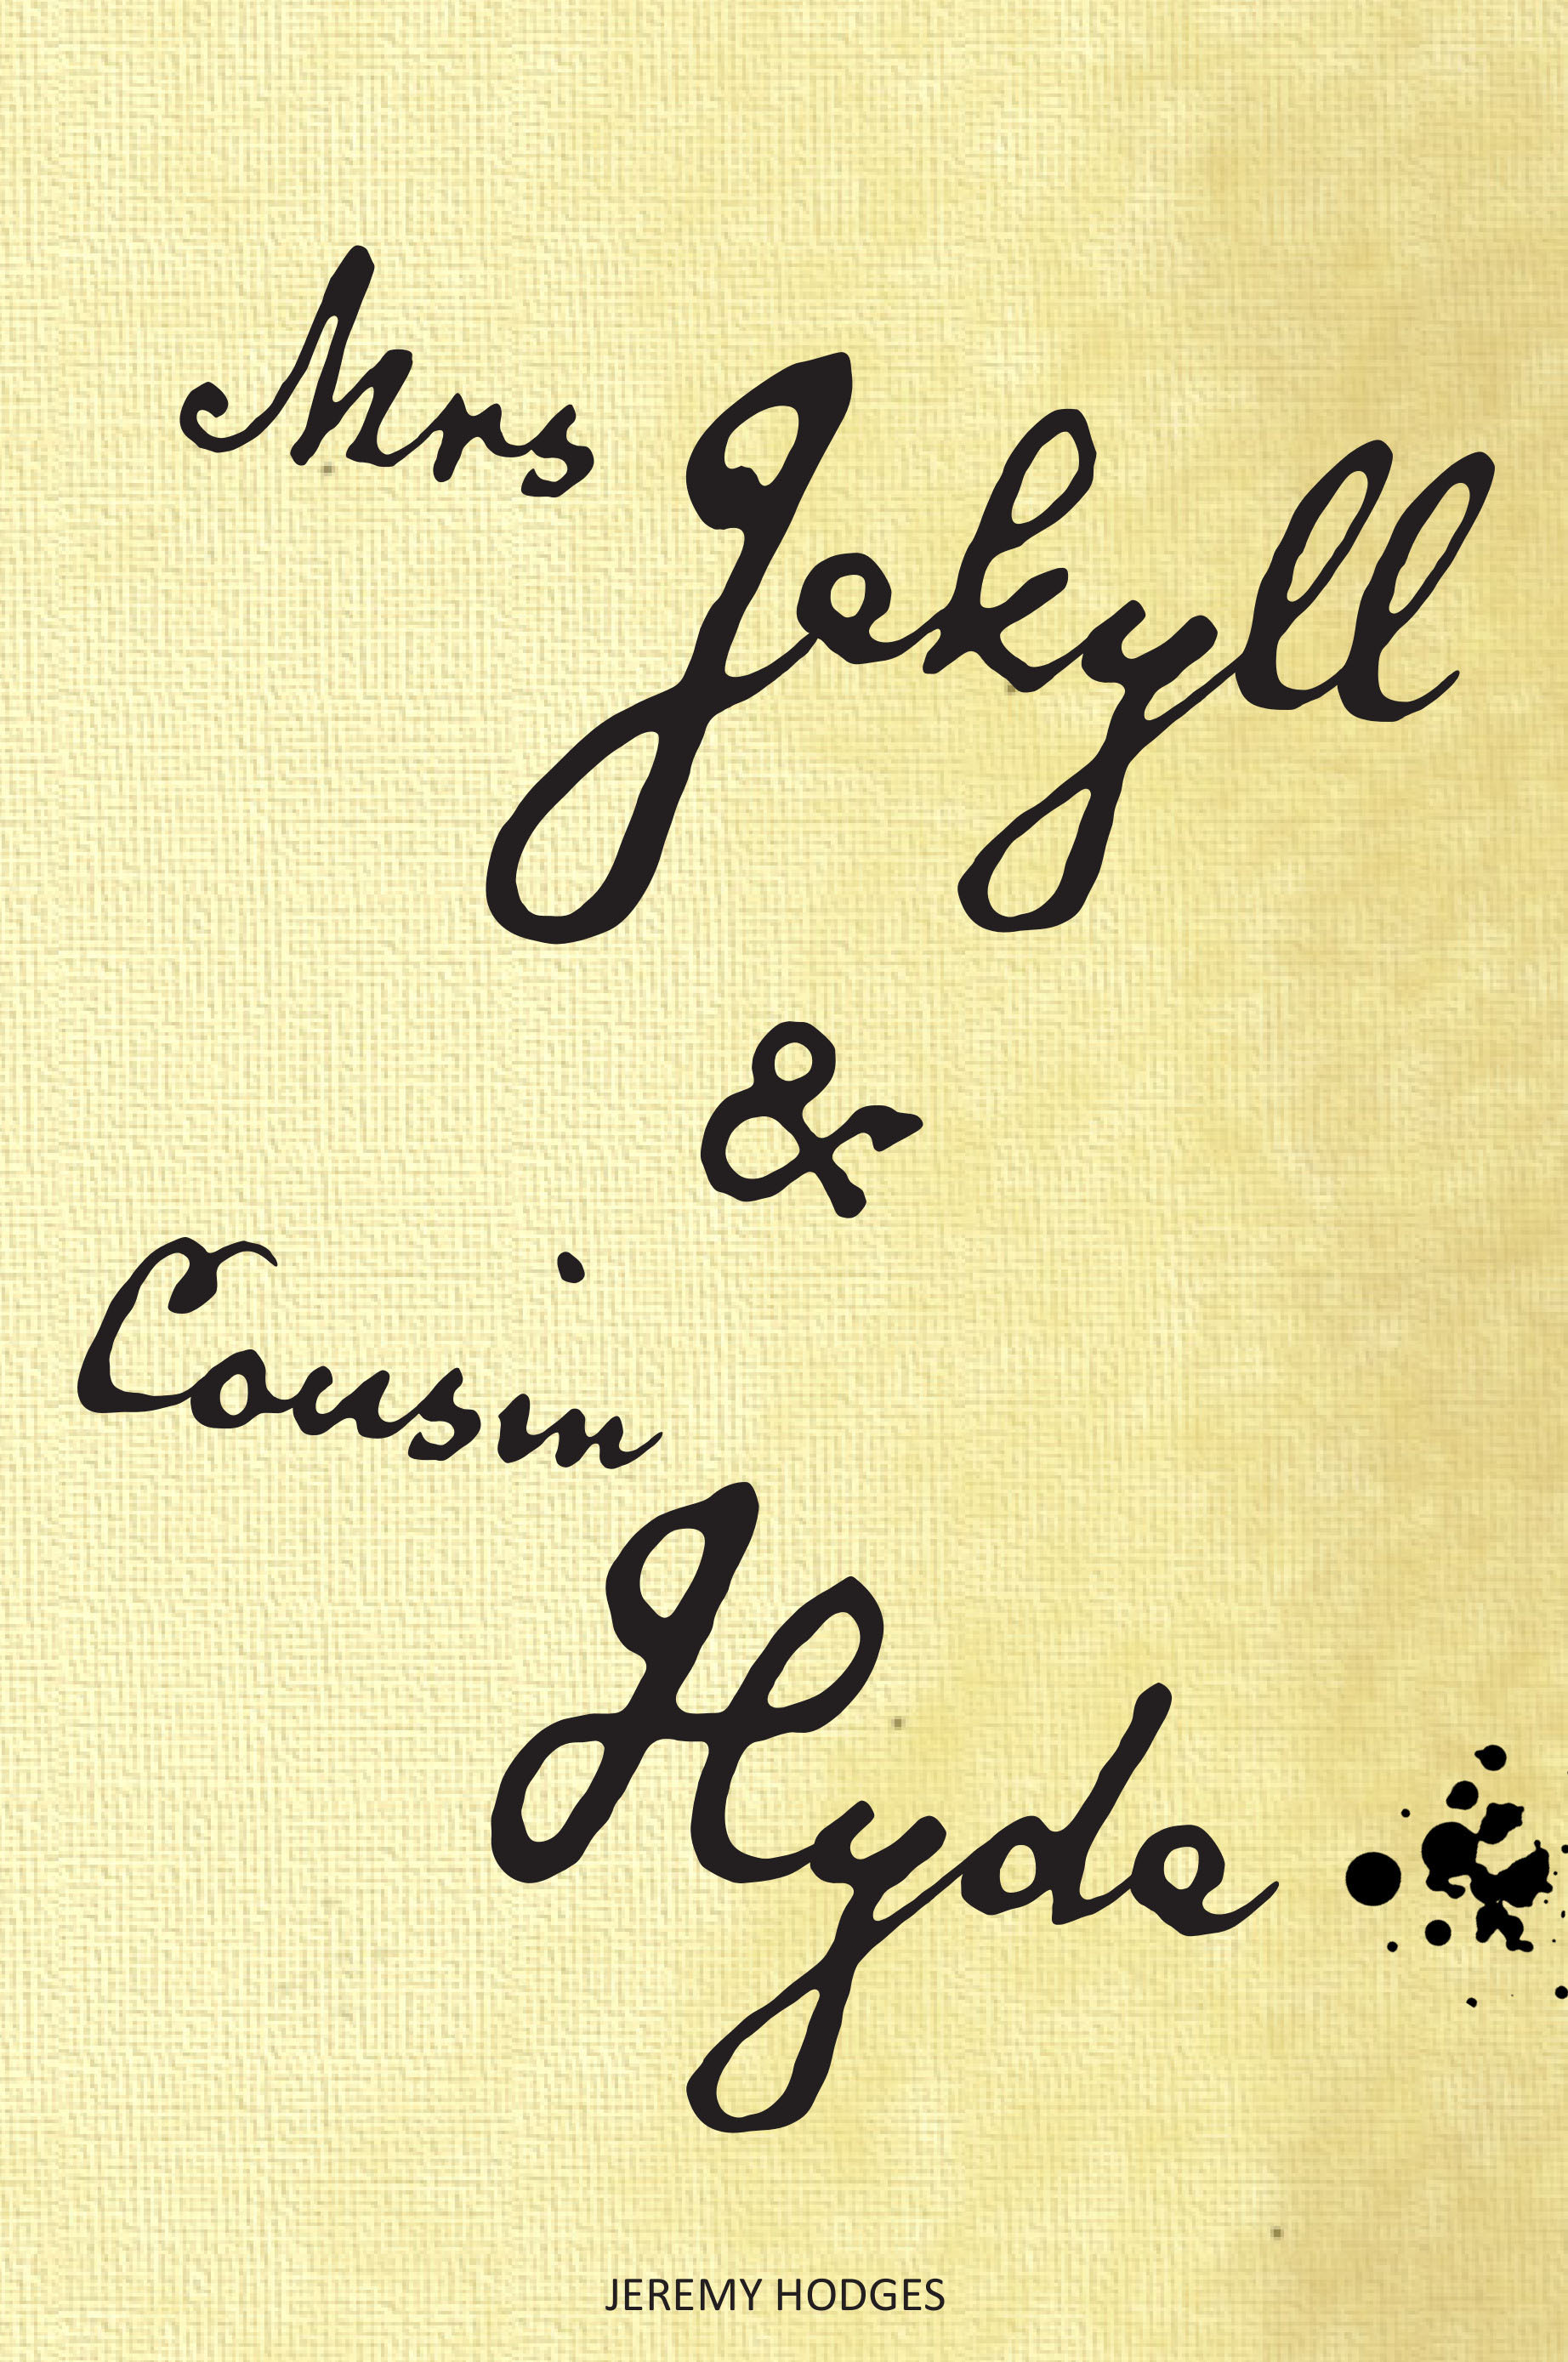 Mrs Jekyll and Cousin Hyde bookcover